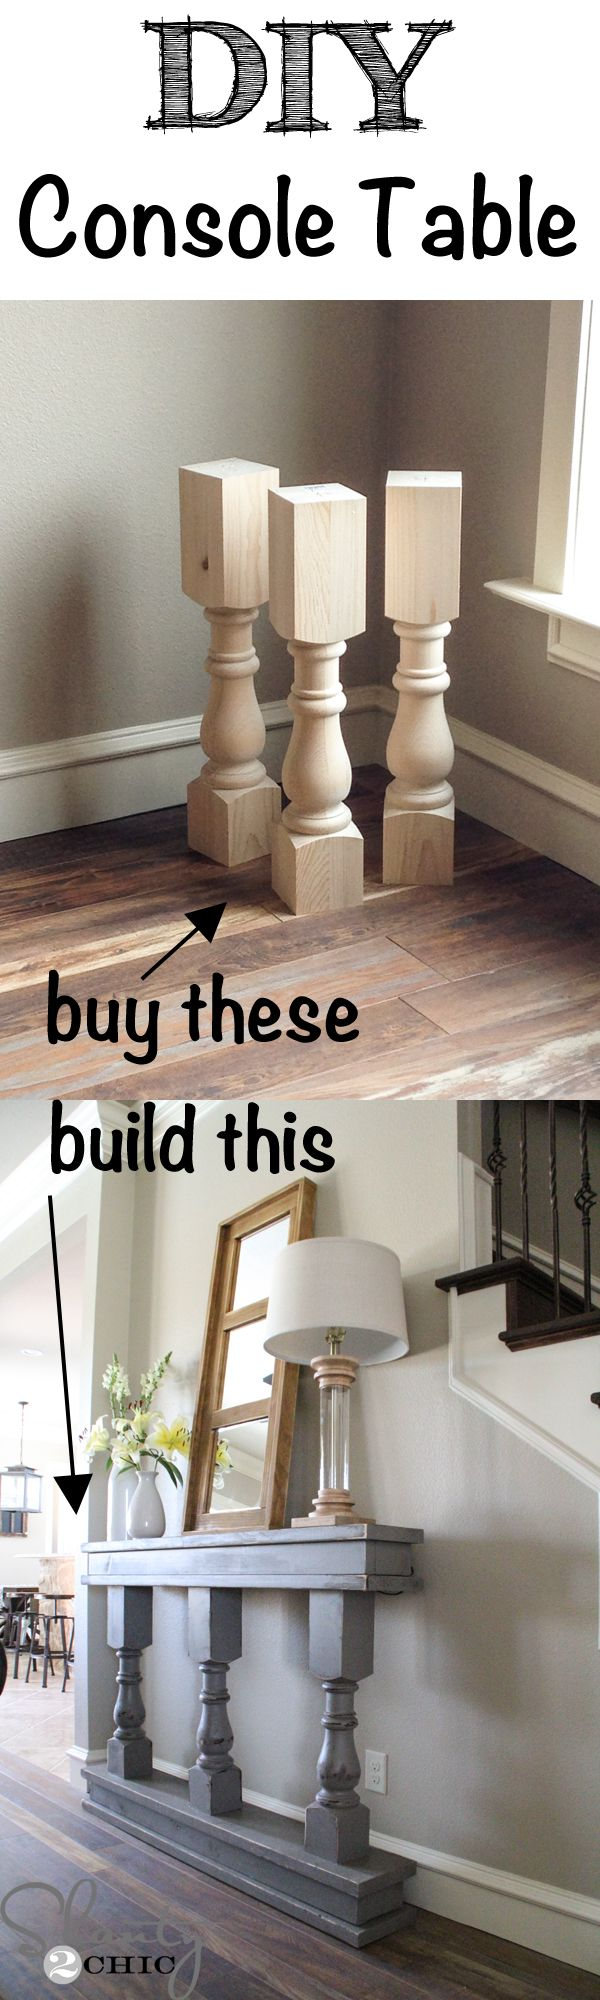 Super easy DIY Console Table! Click for FREE Plans!